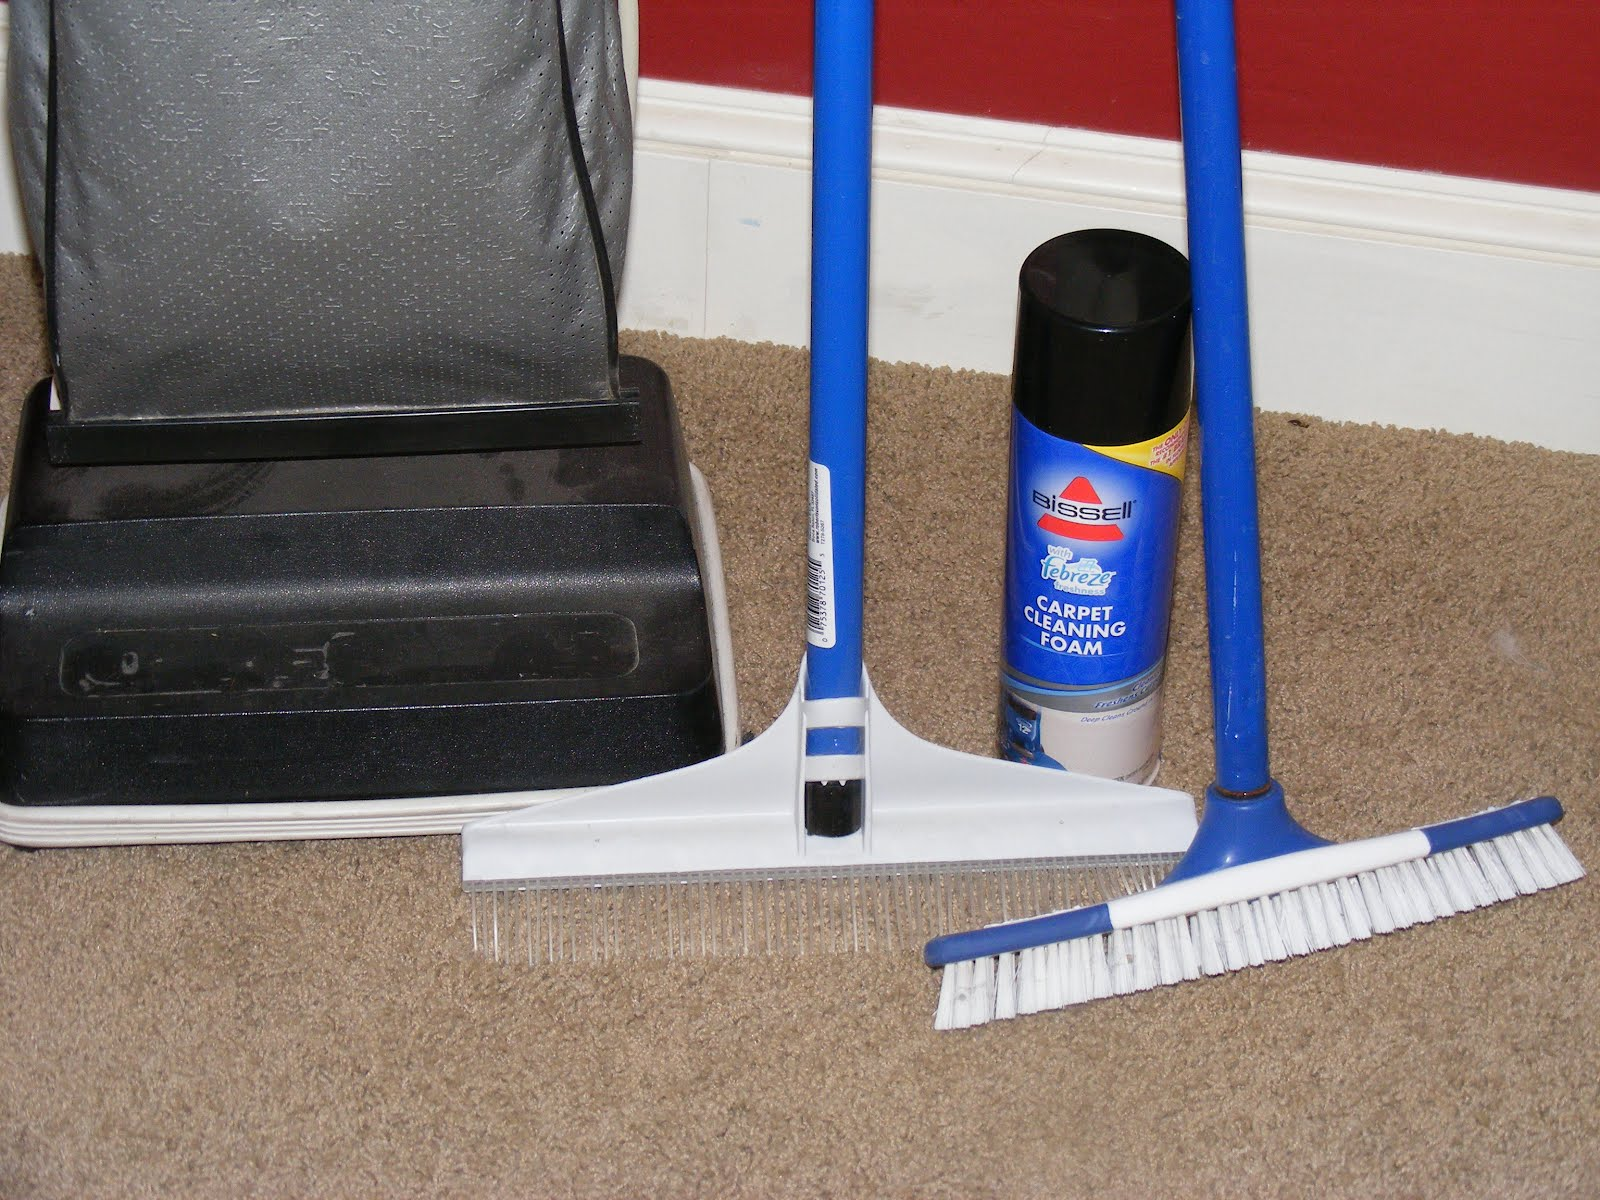 Centercleaning your carpet without a carpet cleanercenter unique just like everyone else solutioingenieria Images